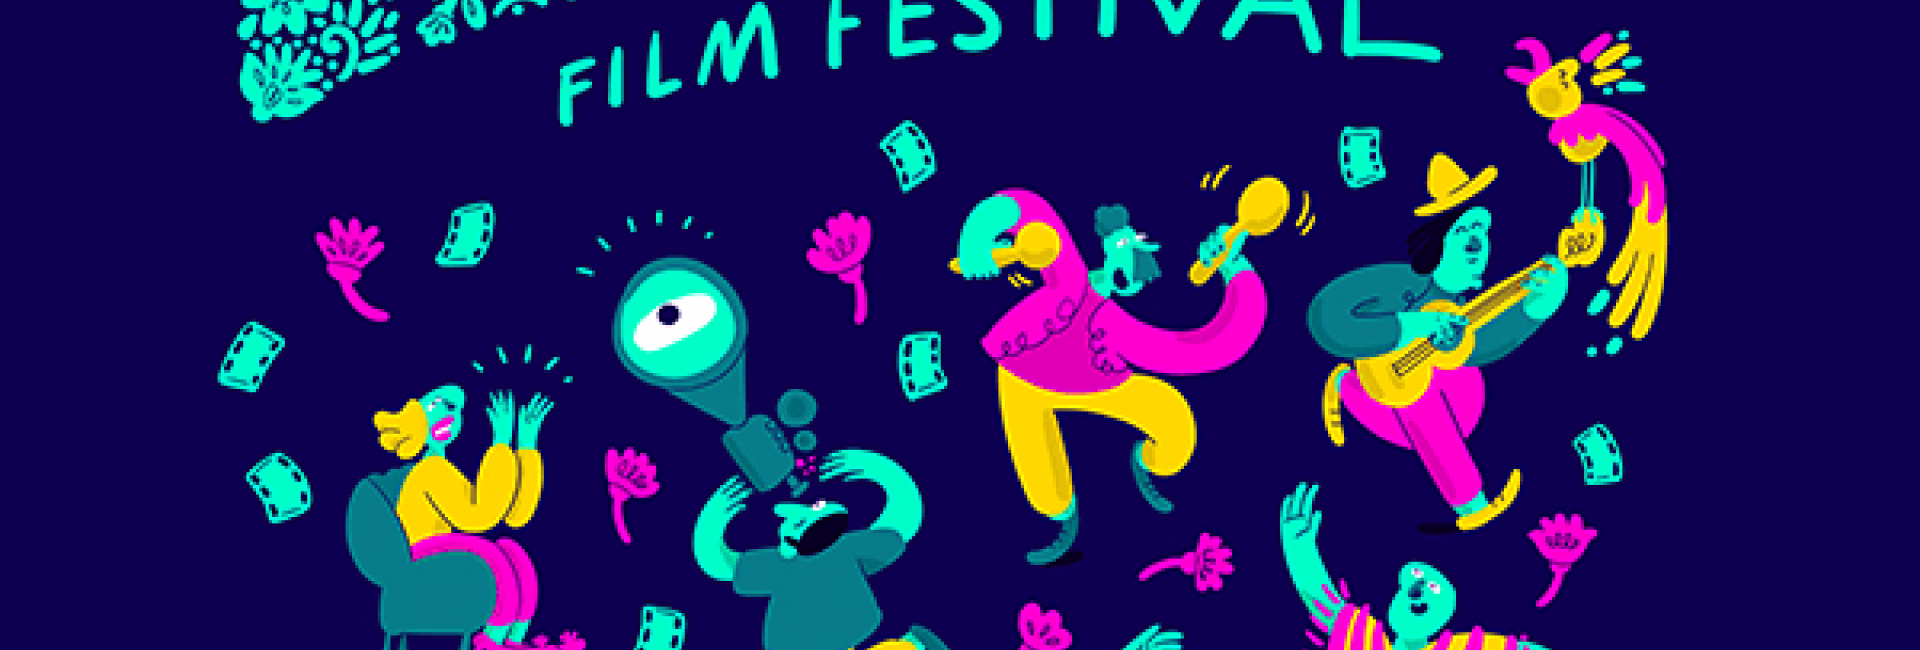 27th San Diego Latino Film Festival International Poster Competition